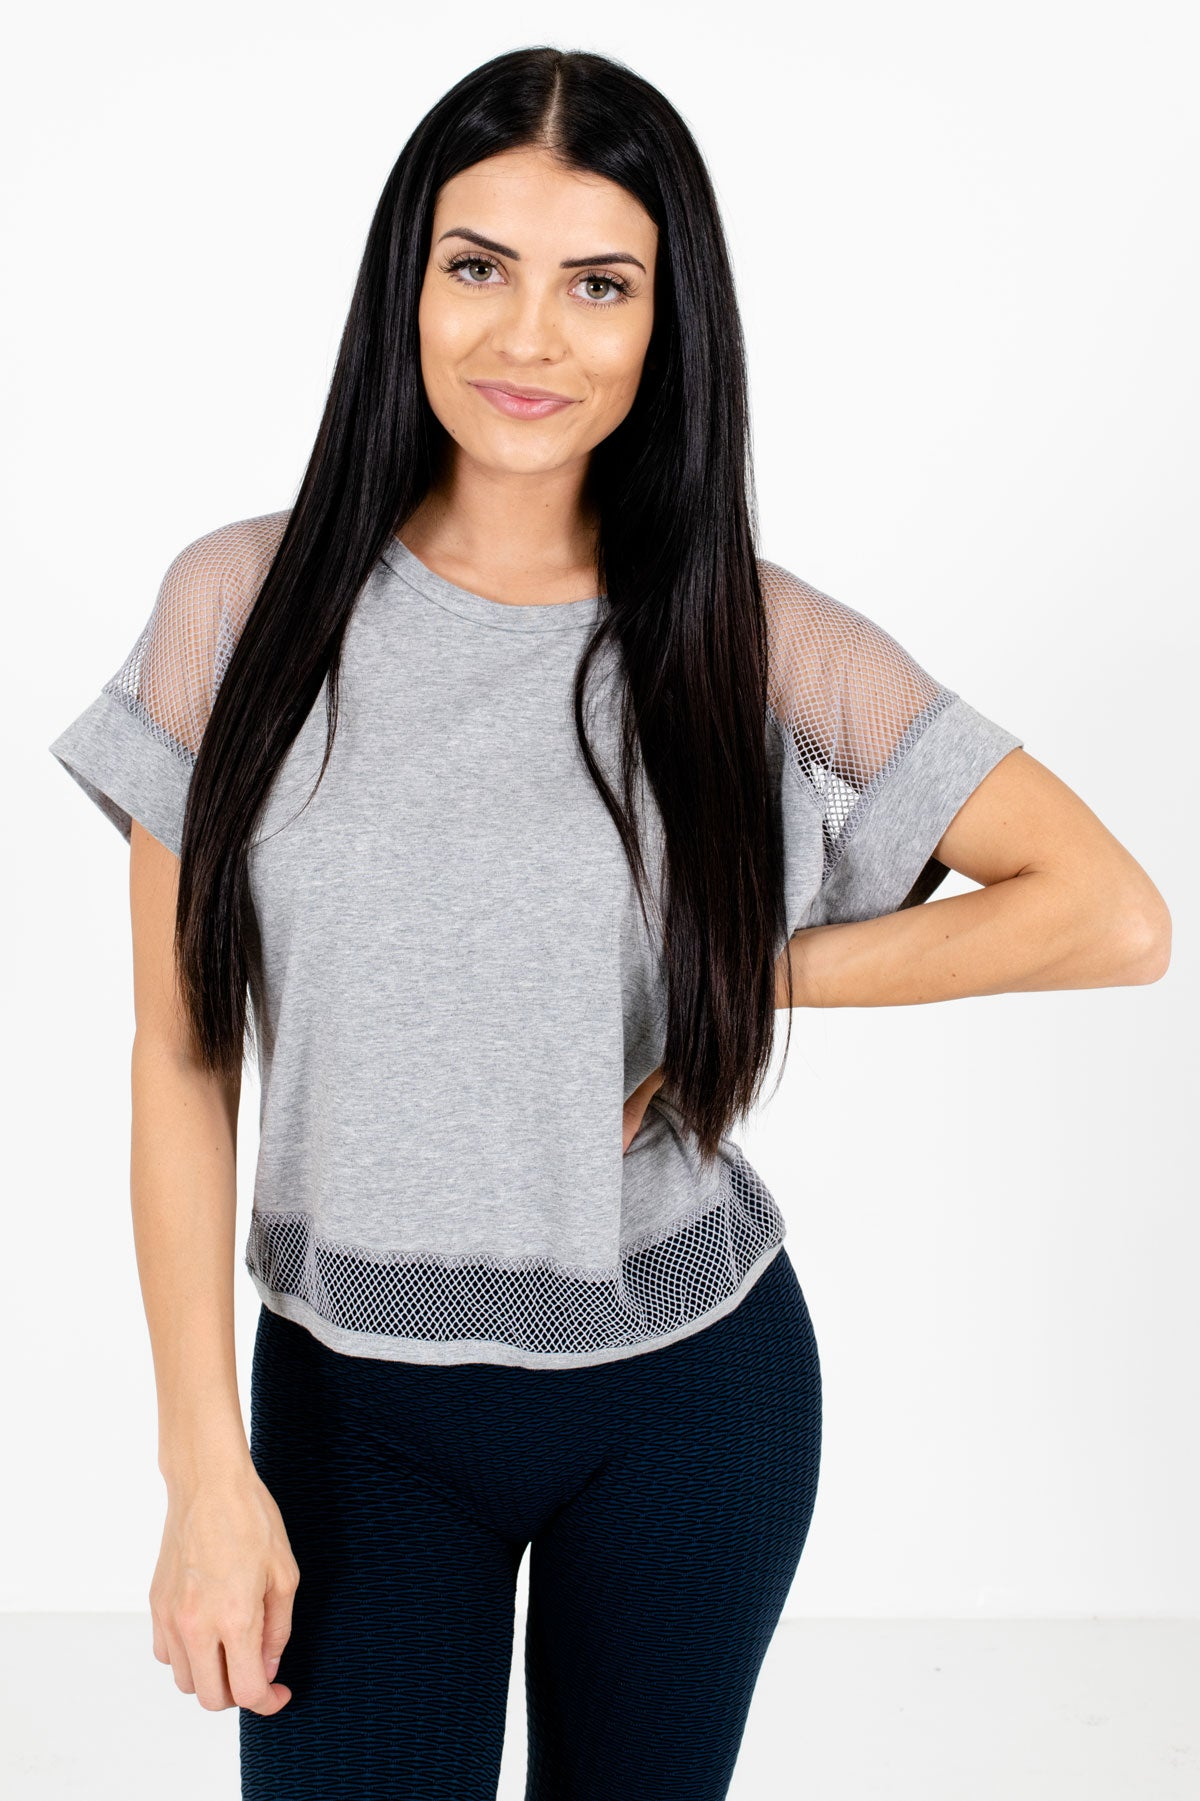 Heather Gray Semi-Sheer Mesh Accented Boutique Active Tees for Women